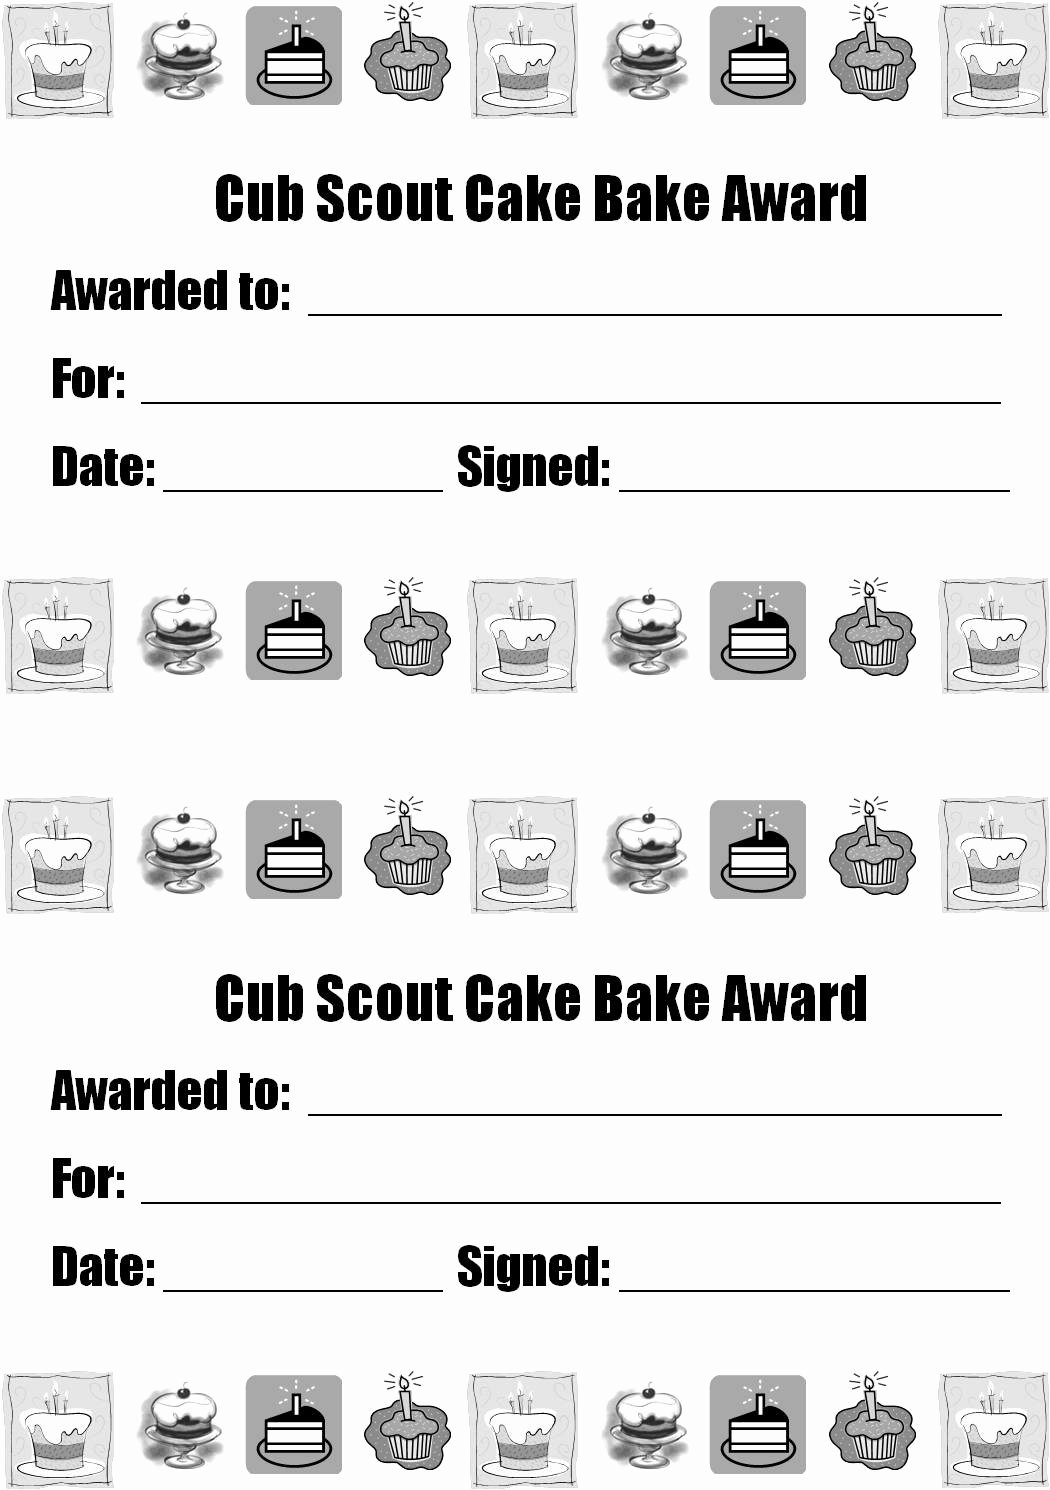 Cub Scout Certificate Template Inspirational Strong Armor Cub Scouts Blue & Gold Dinner Cake Bake Awards